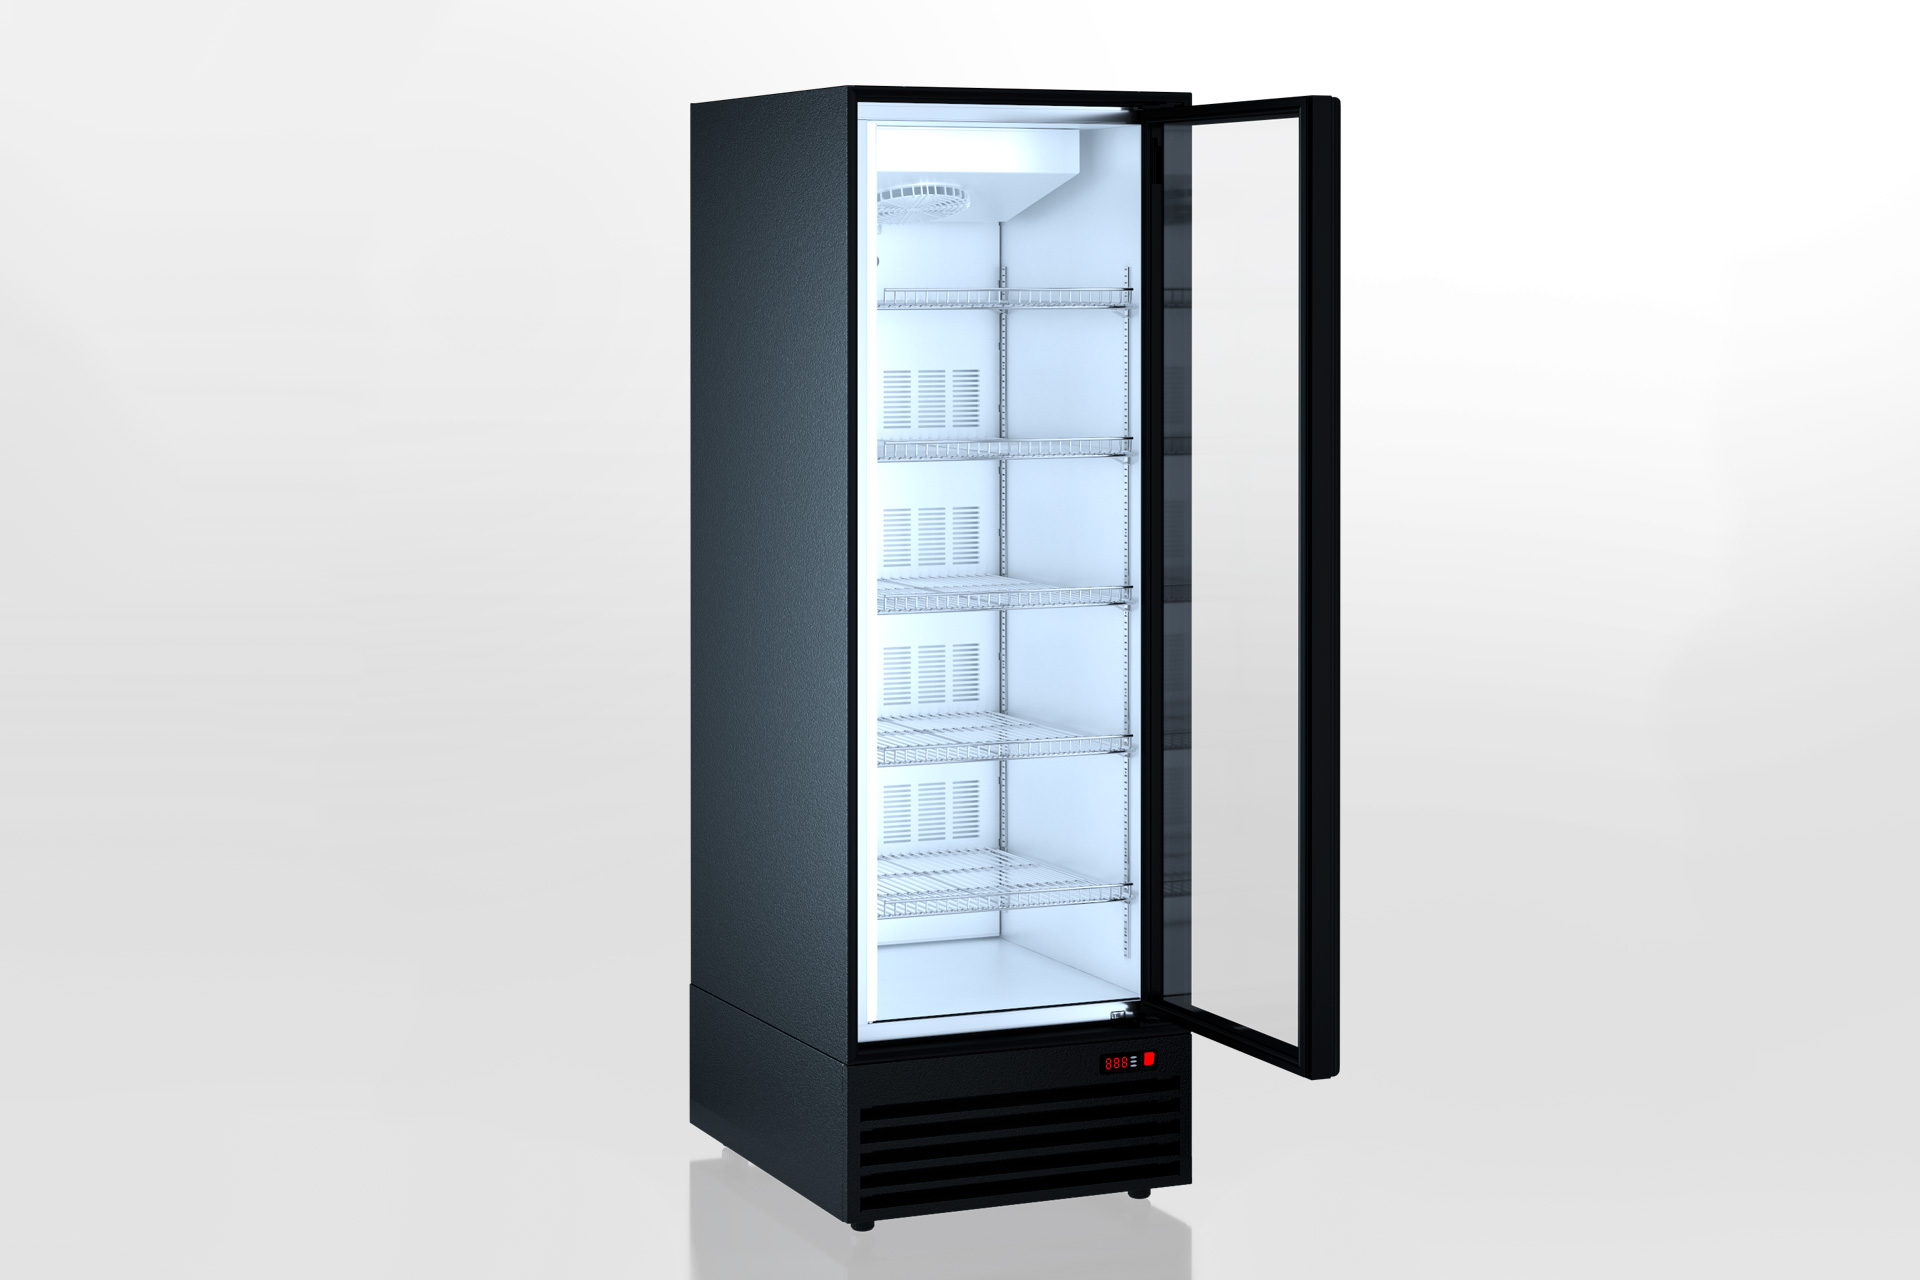 Refrigerated cabinets Kansas A1SG 087 LT 1HD 210-D700A-069 (with Hitline door)